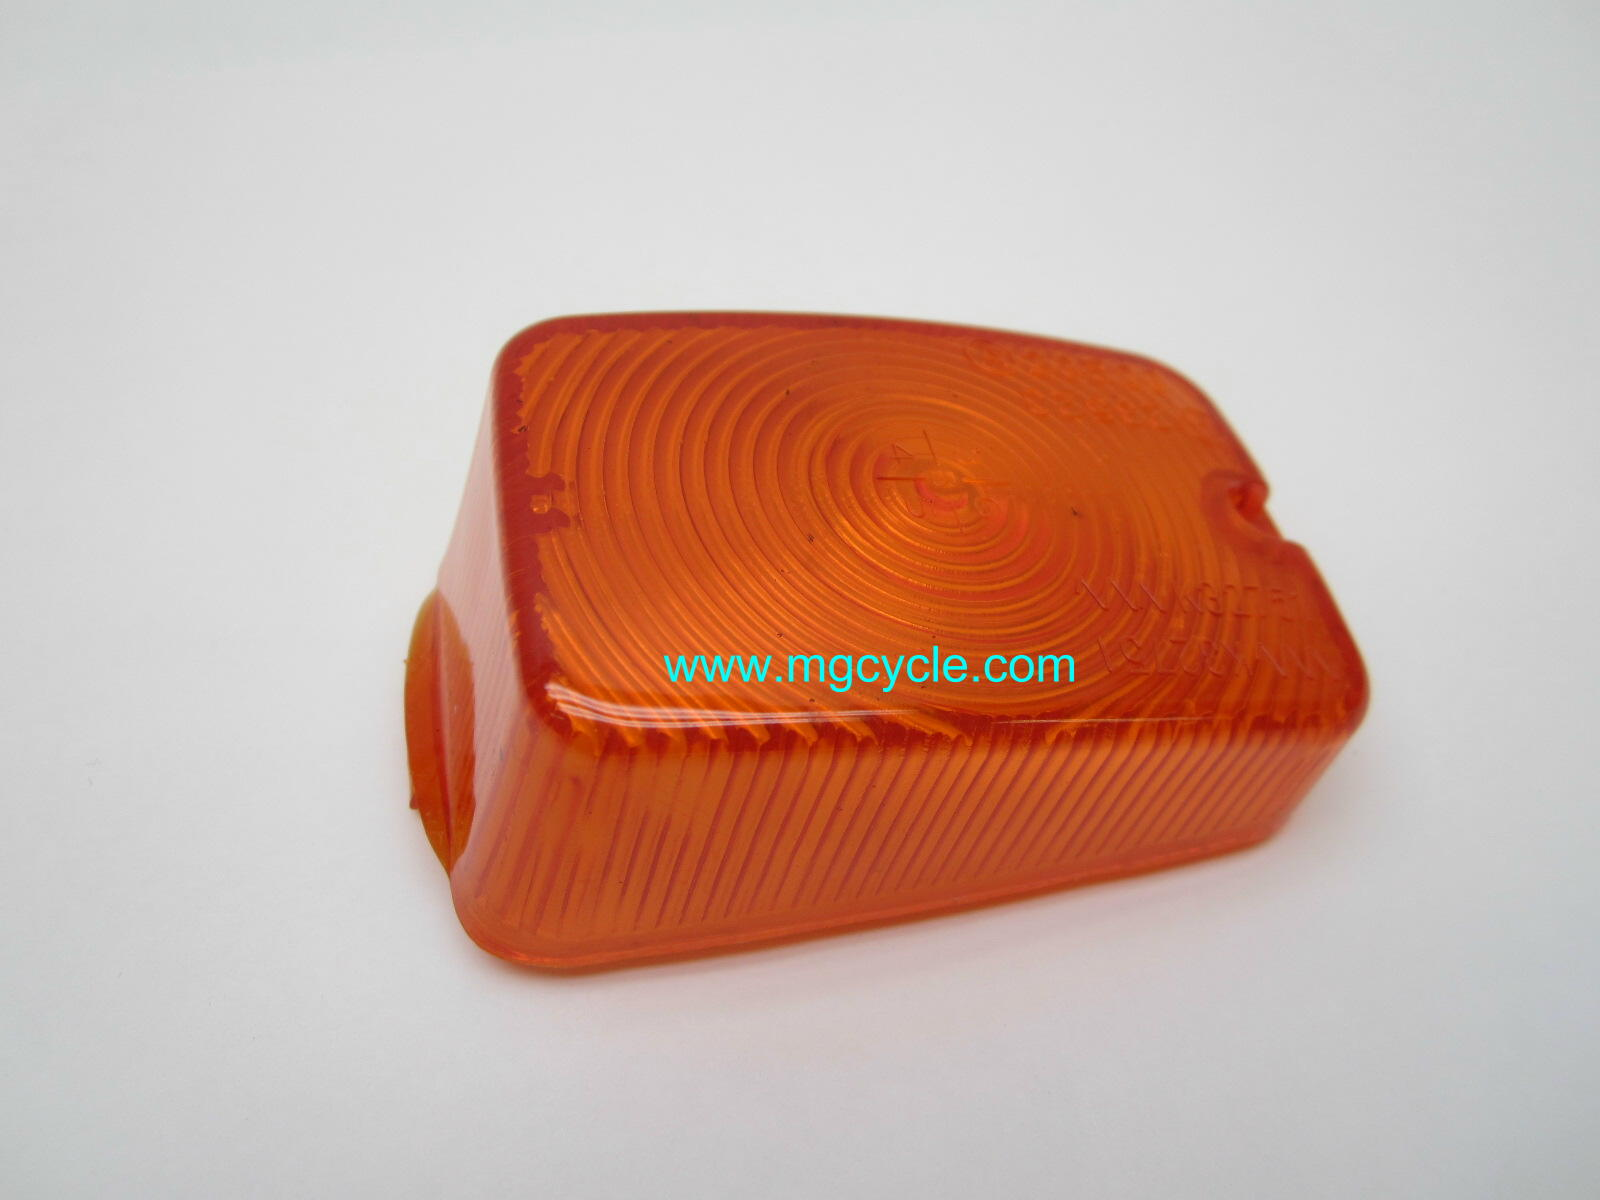 turn signal lens for rectangular turn signal